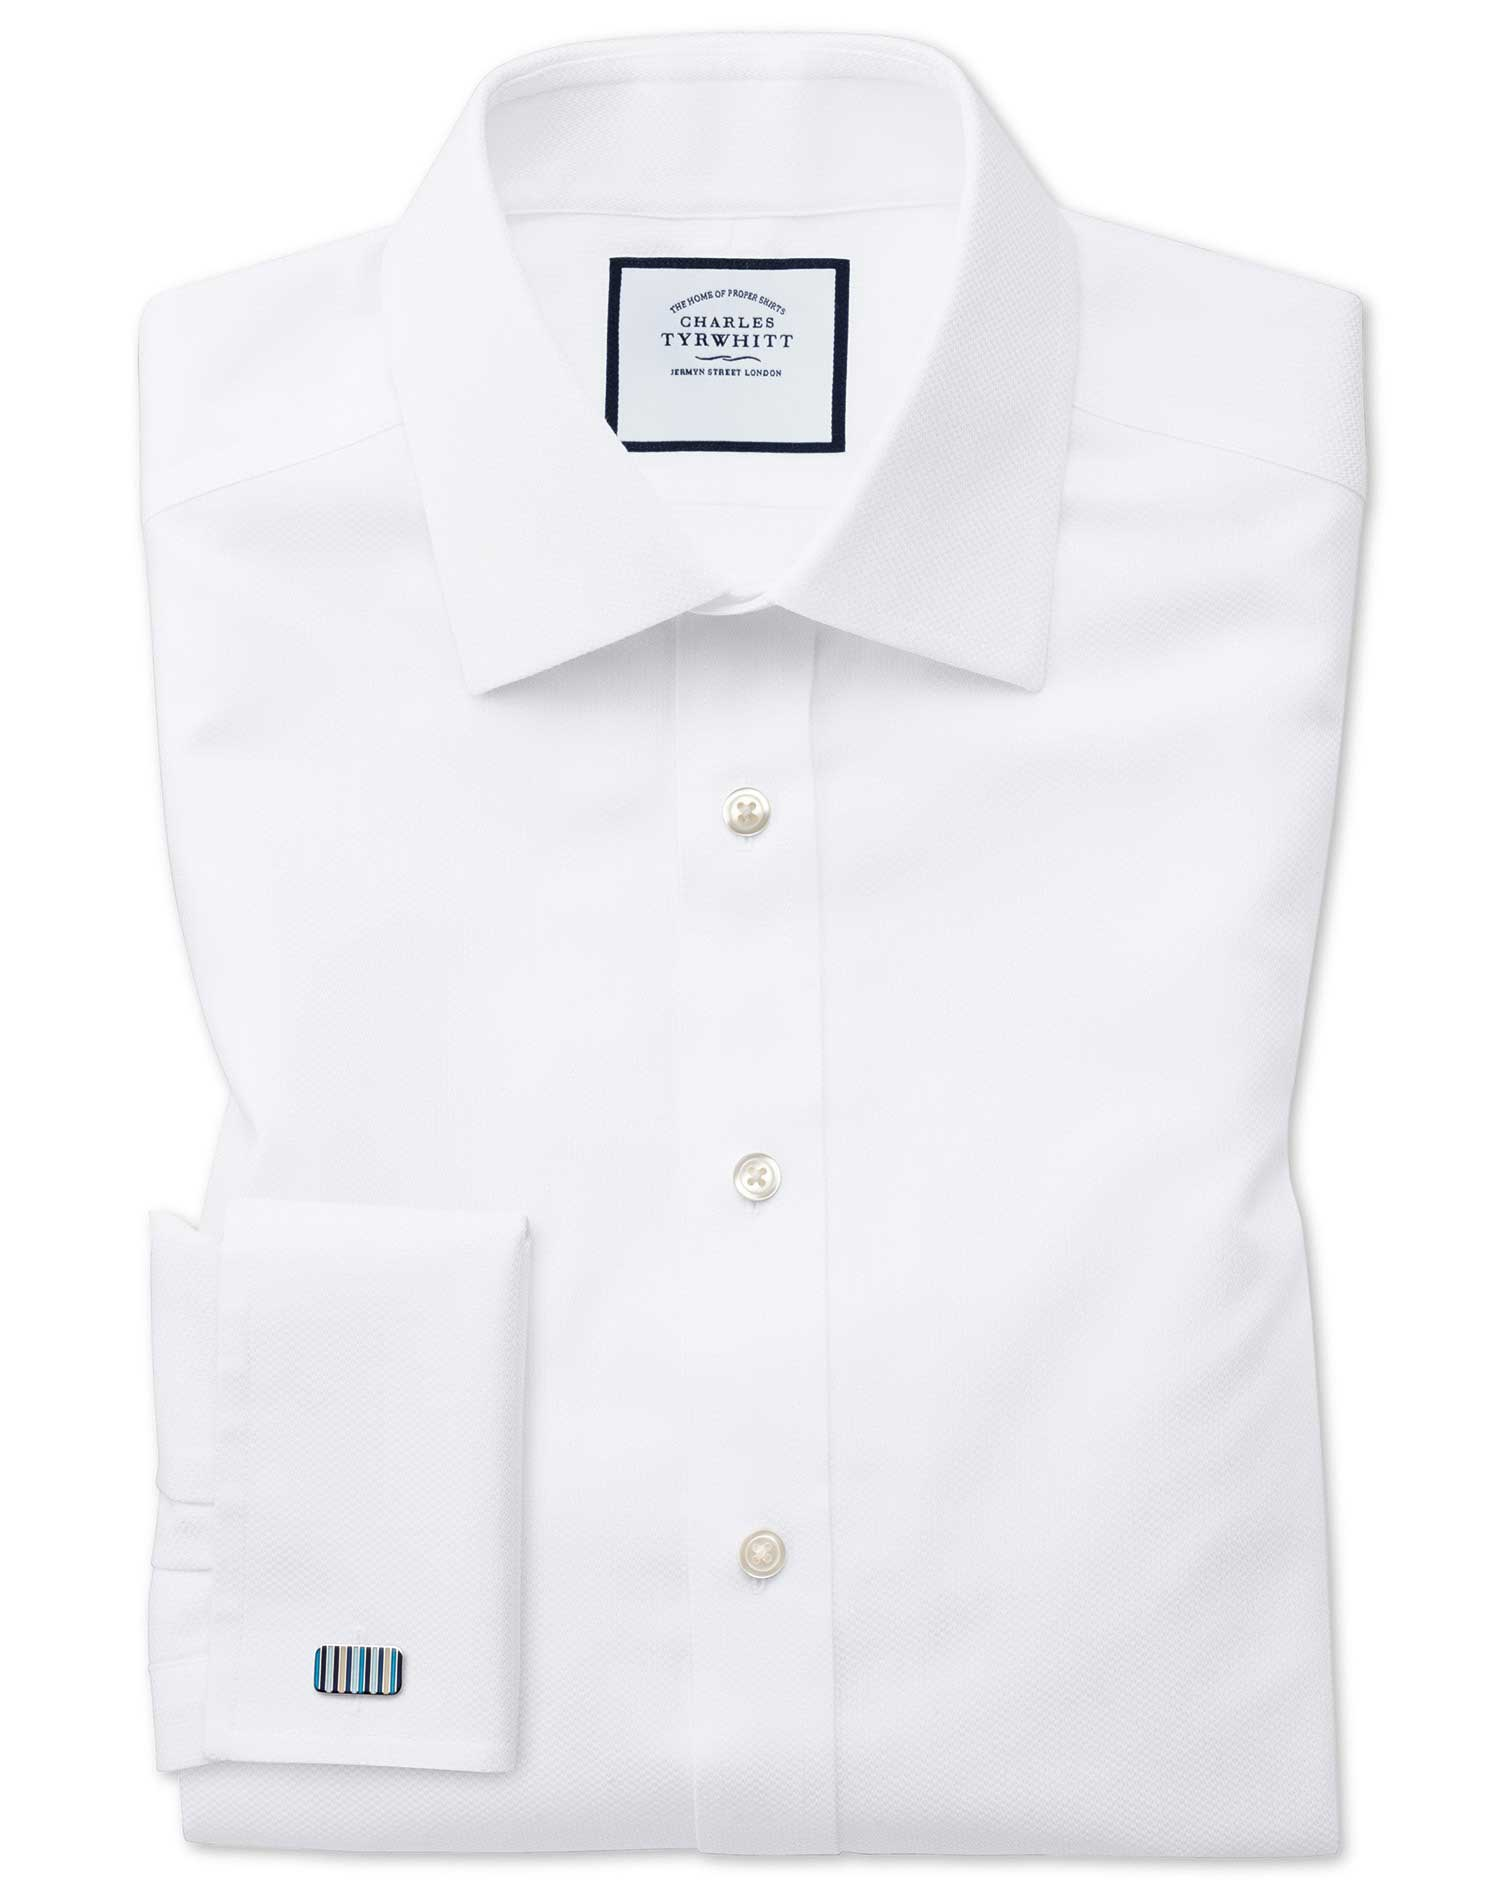 Extra Slim Fit Non-Iron White Arrow Weave Cotton Formal Shirt Single Cuff Size 15/33 by Charles Tyrw